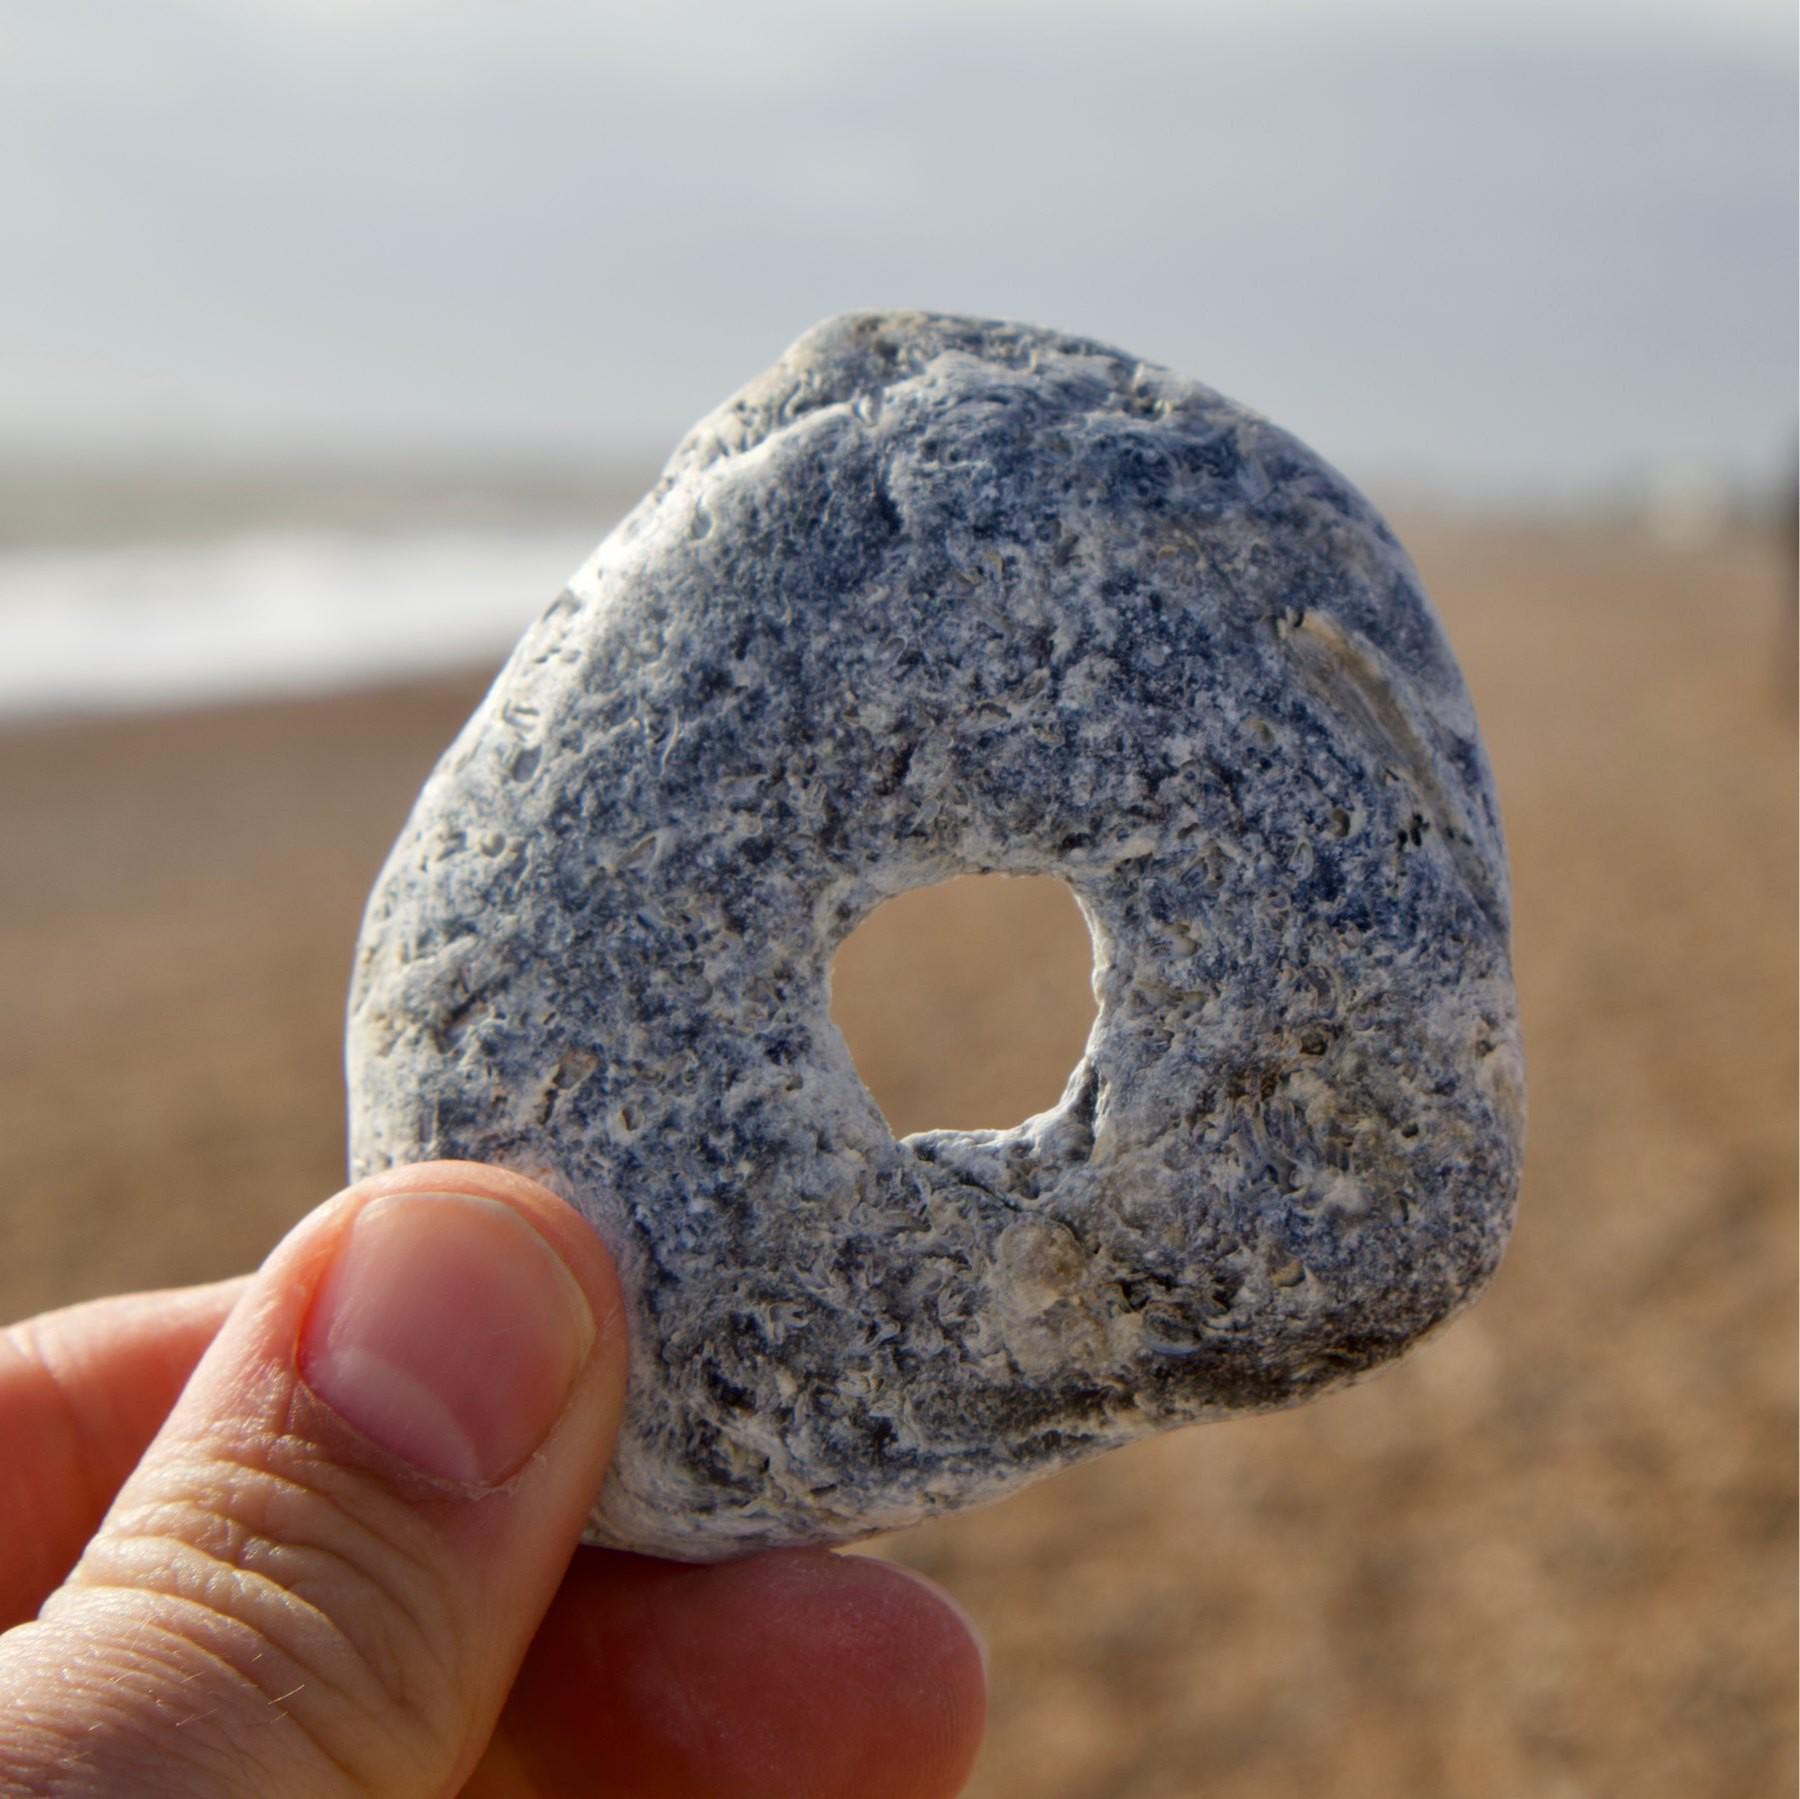 Another hagstone found on Shoreham Beach